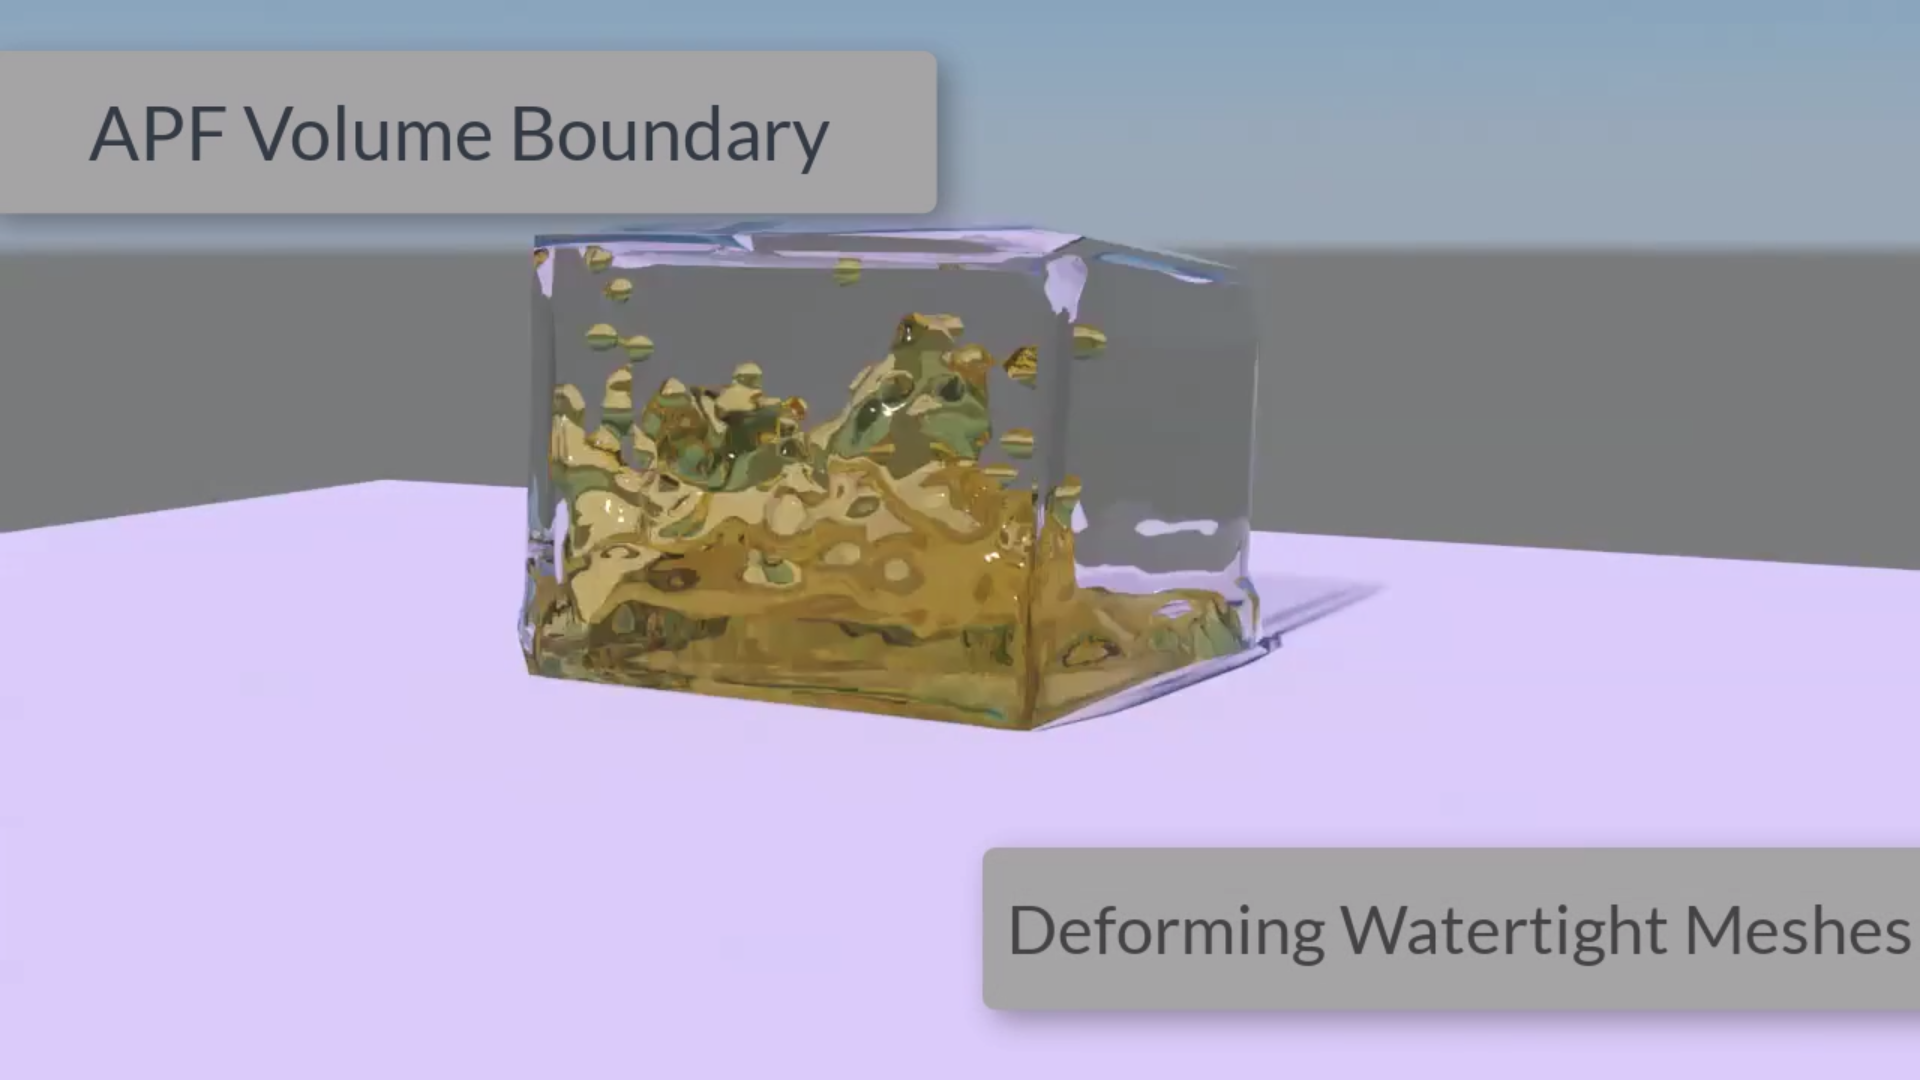 apfVolBoundary.png